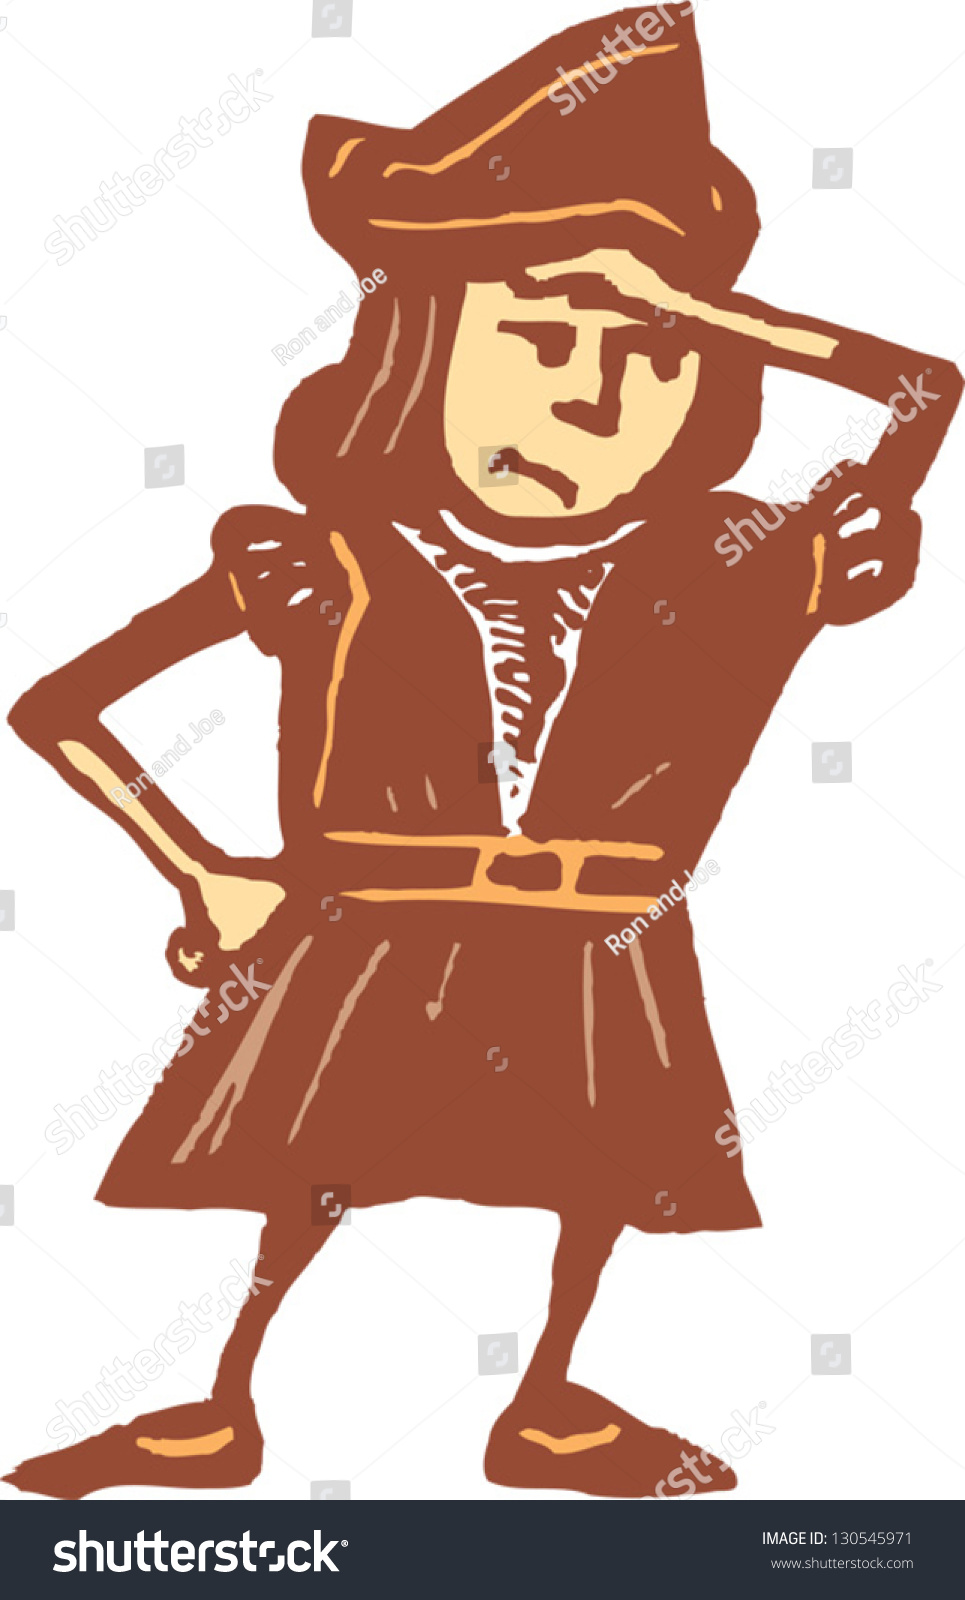 medium resolution of vector illustration of a boy in christopher columbus costume